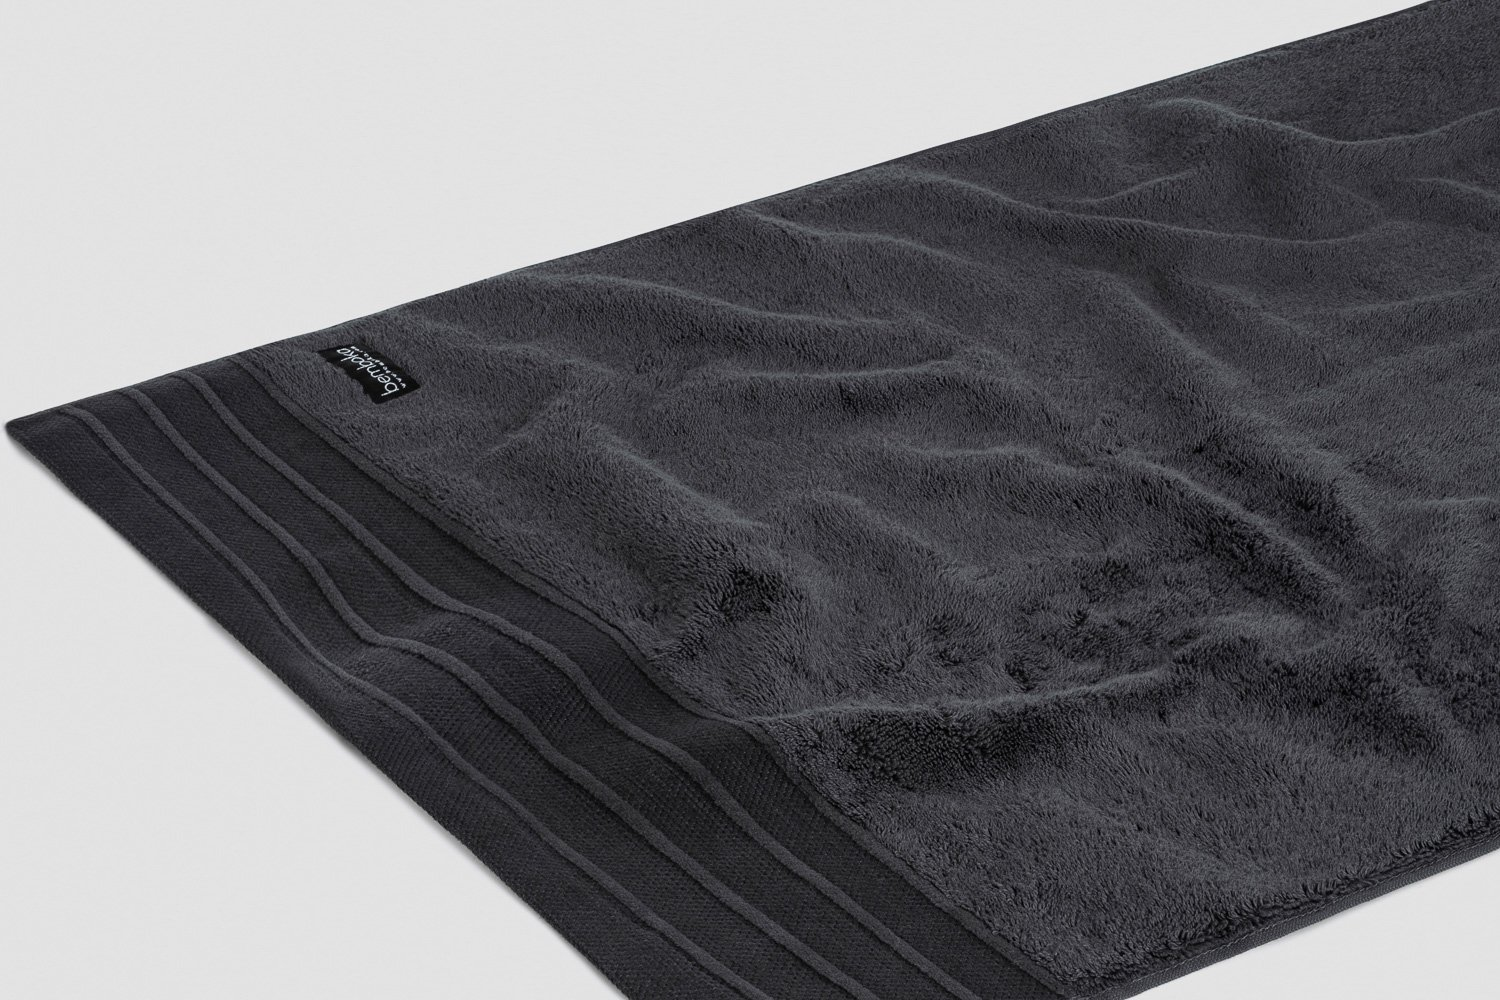 luxe hand towels in charcoal colour